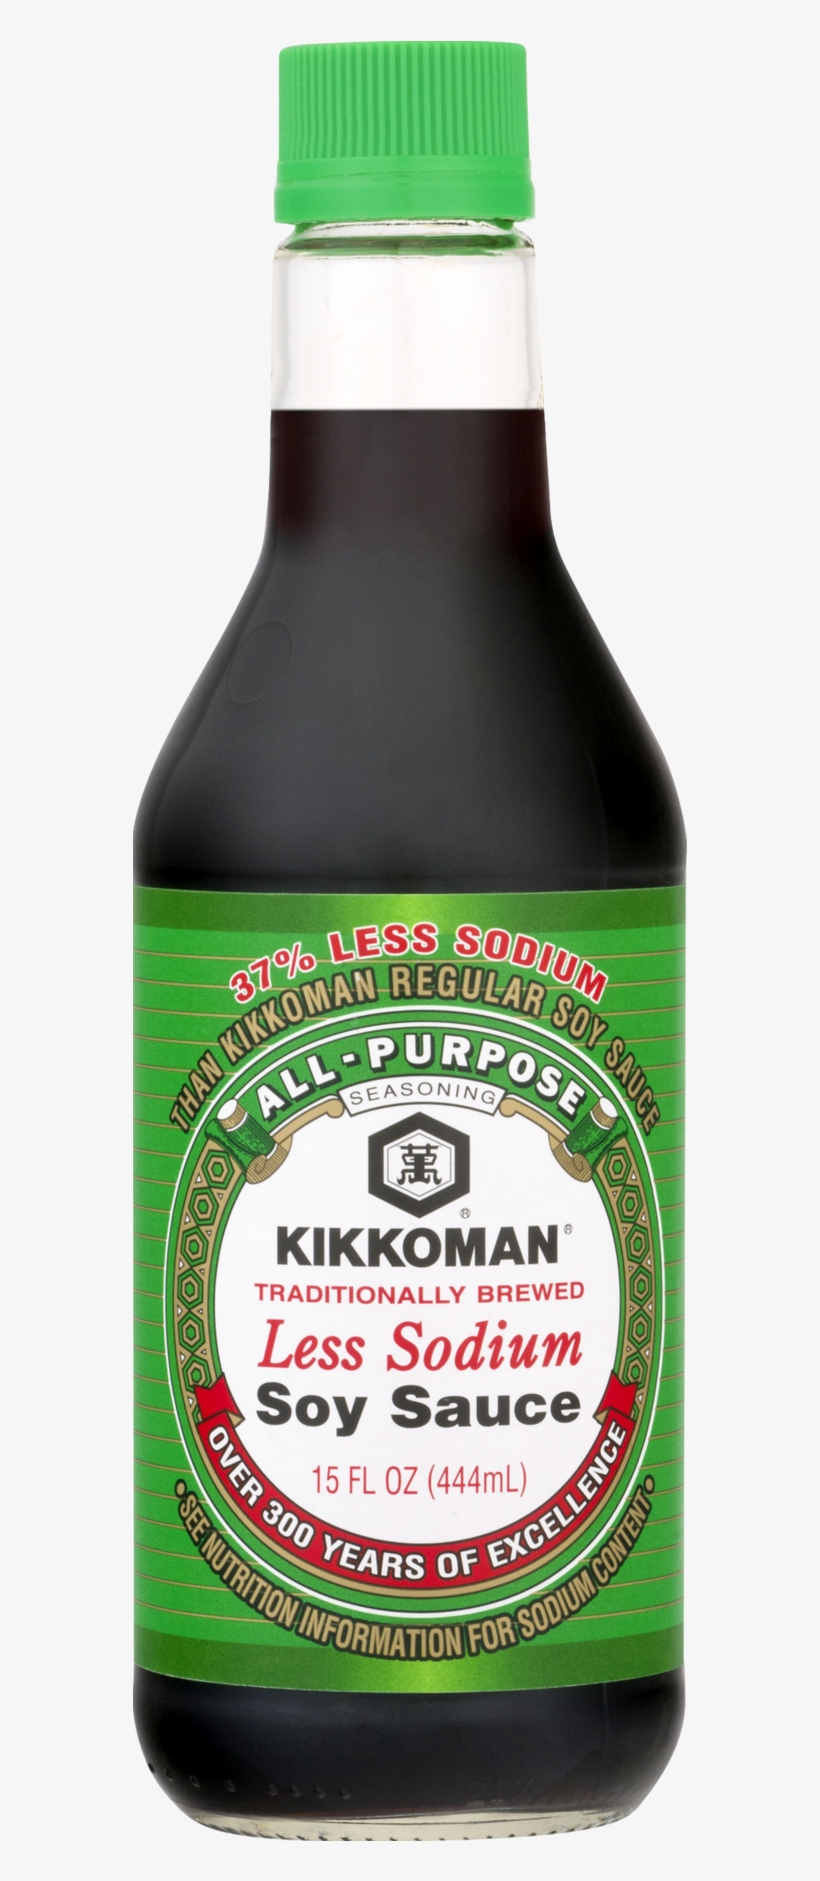 Kikkoman Less Sodium Soy Sauce - 5 Fl Oz Bottle, transparent png #1932608